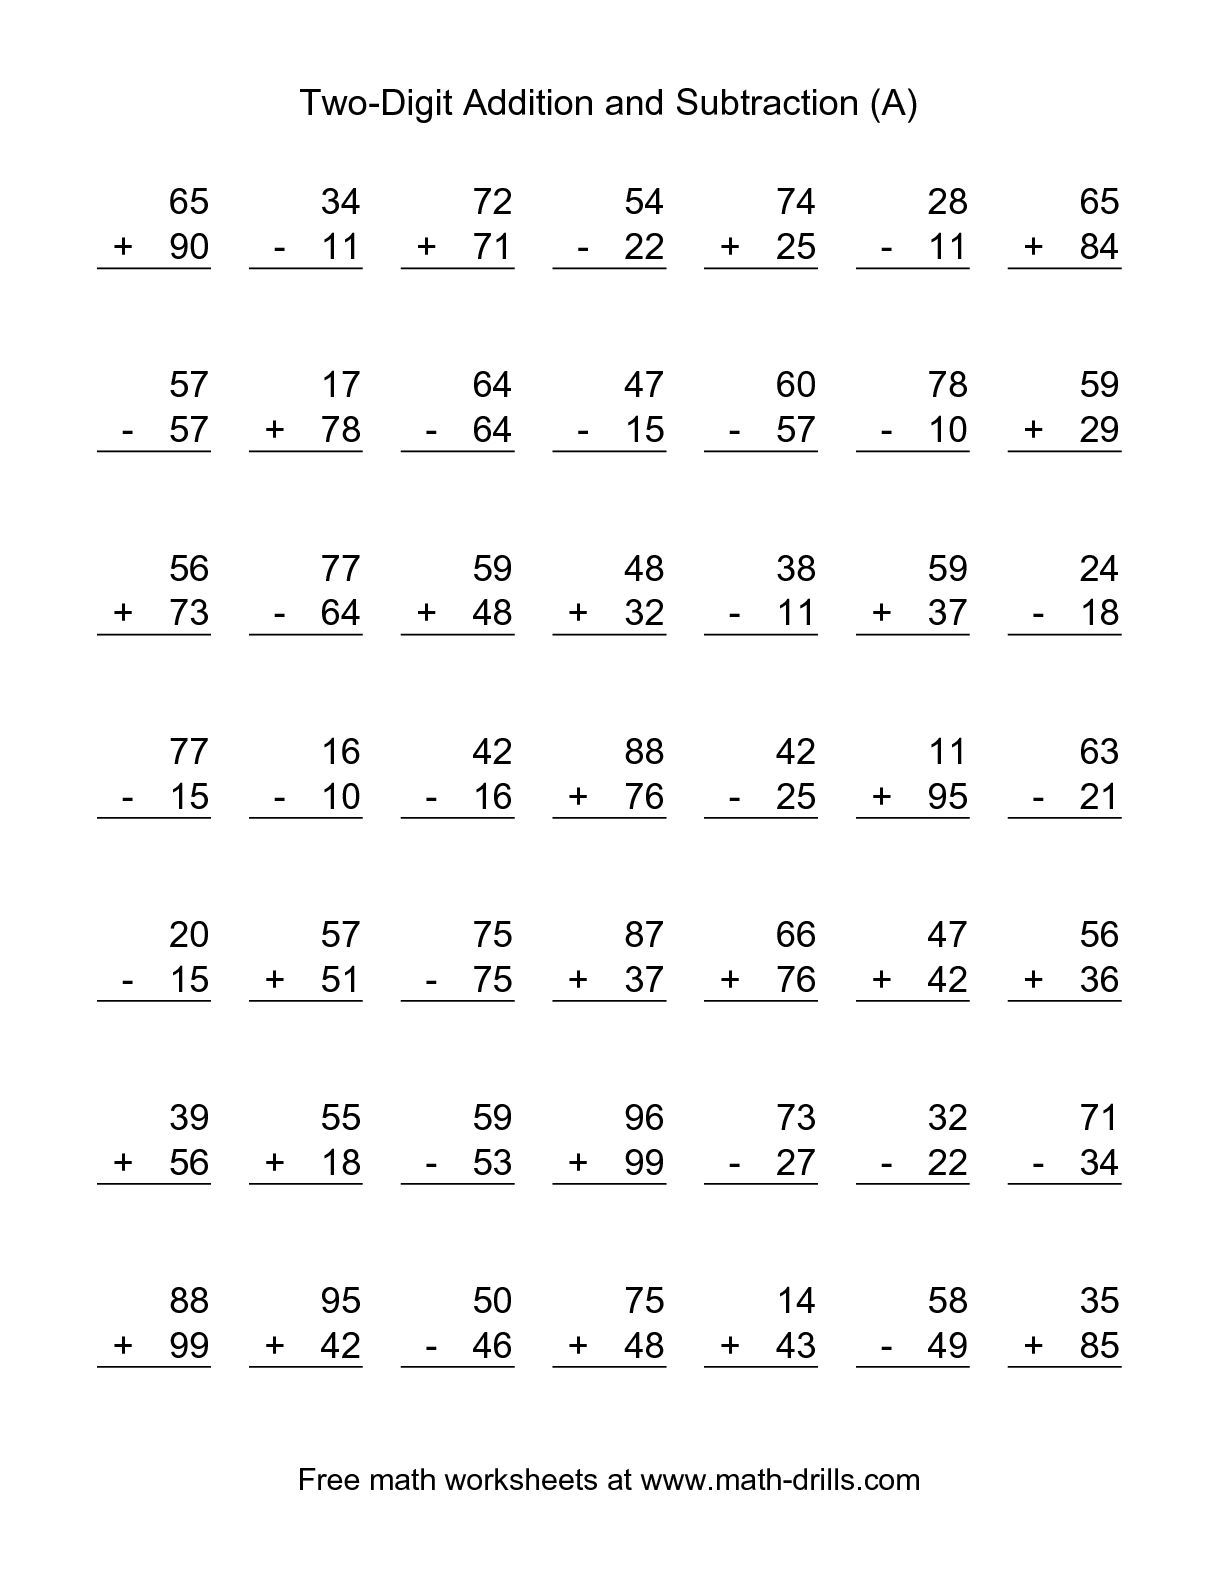 Pin By Amy Lorenz On Math Add And Subtract Addition And Subtraction Worksheets Math Worksheets Subtraction Worksheets